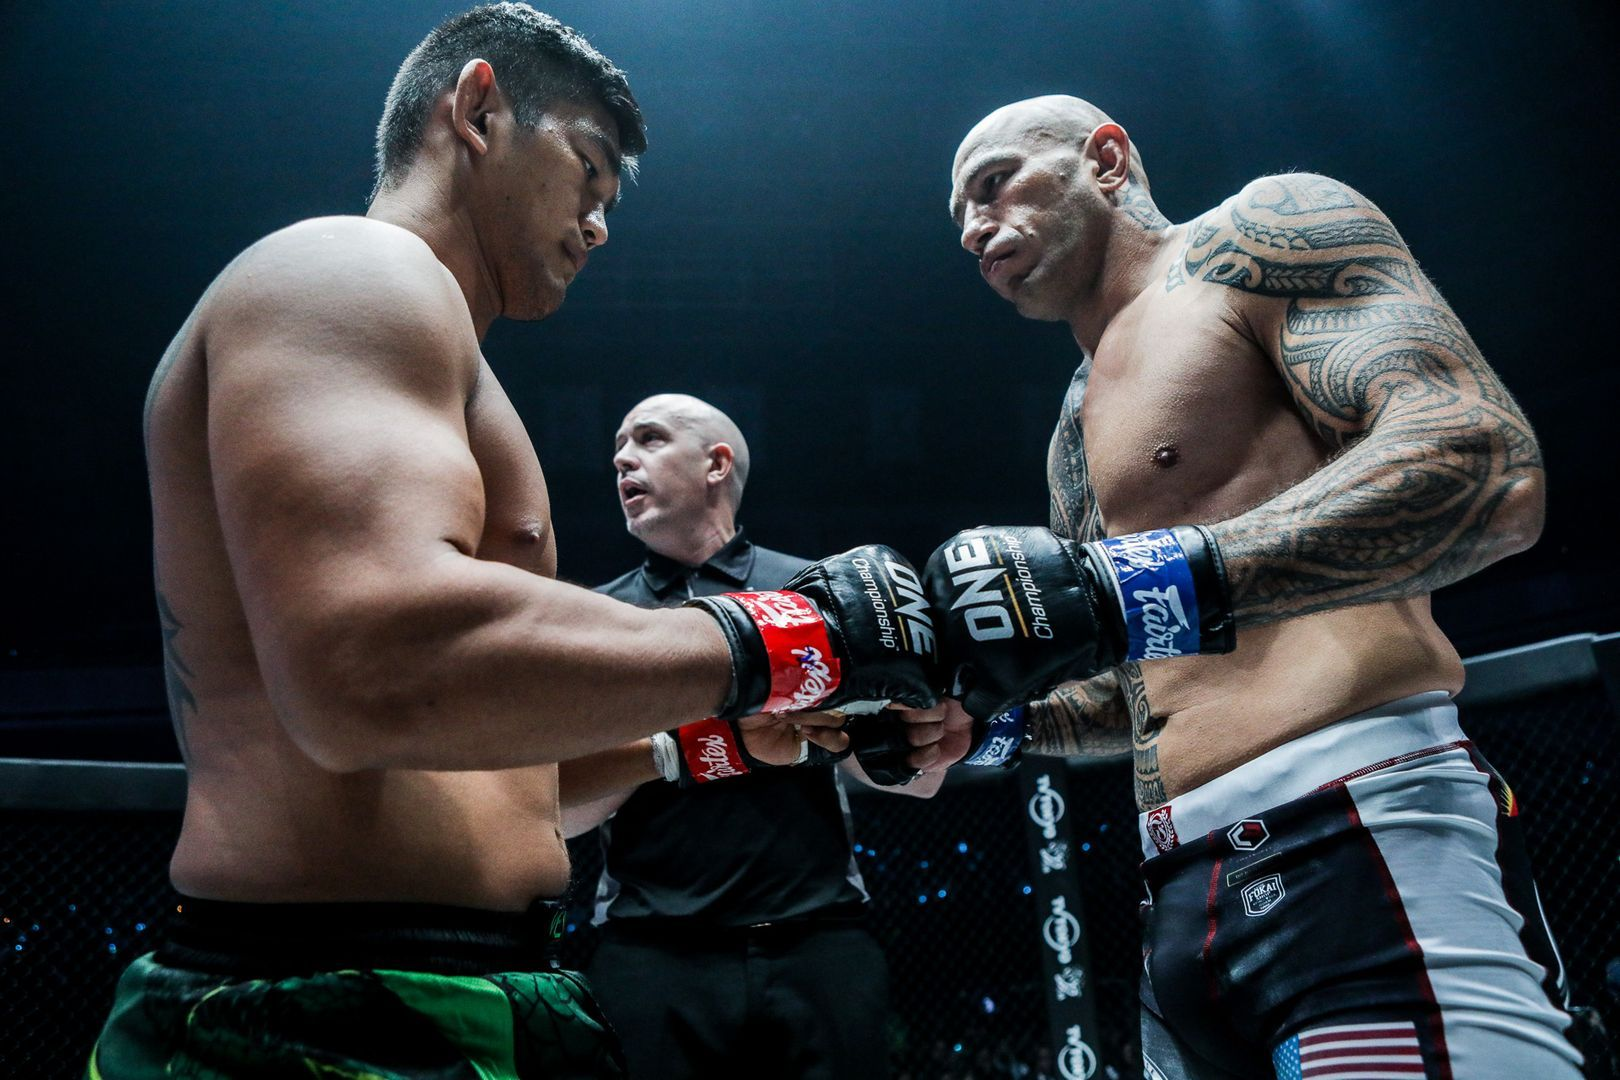 Aung La N Sang and Brandon Vera touch gloves before their battle in Tokyo, Japan